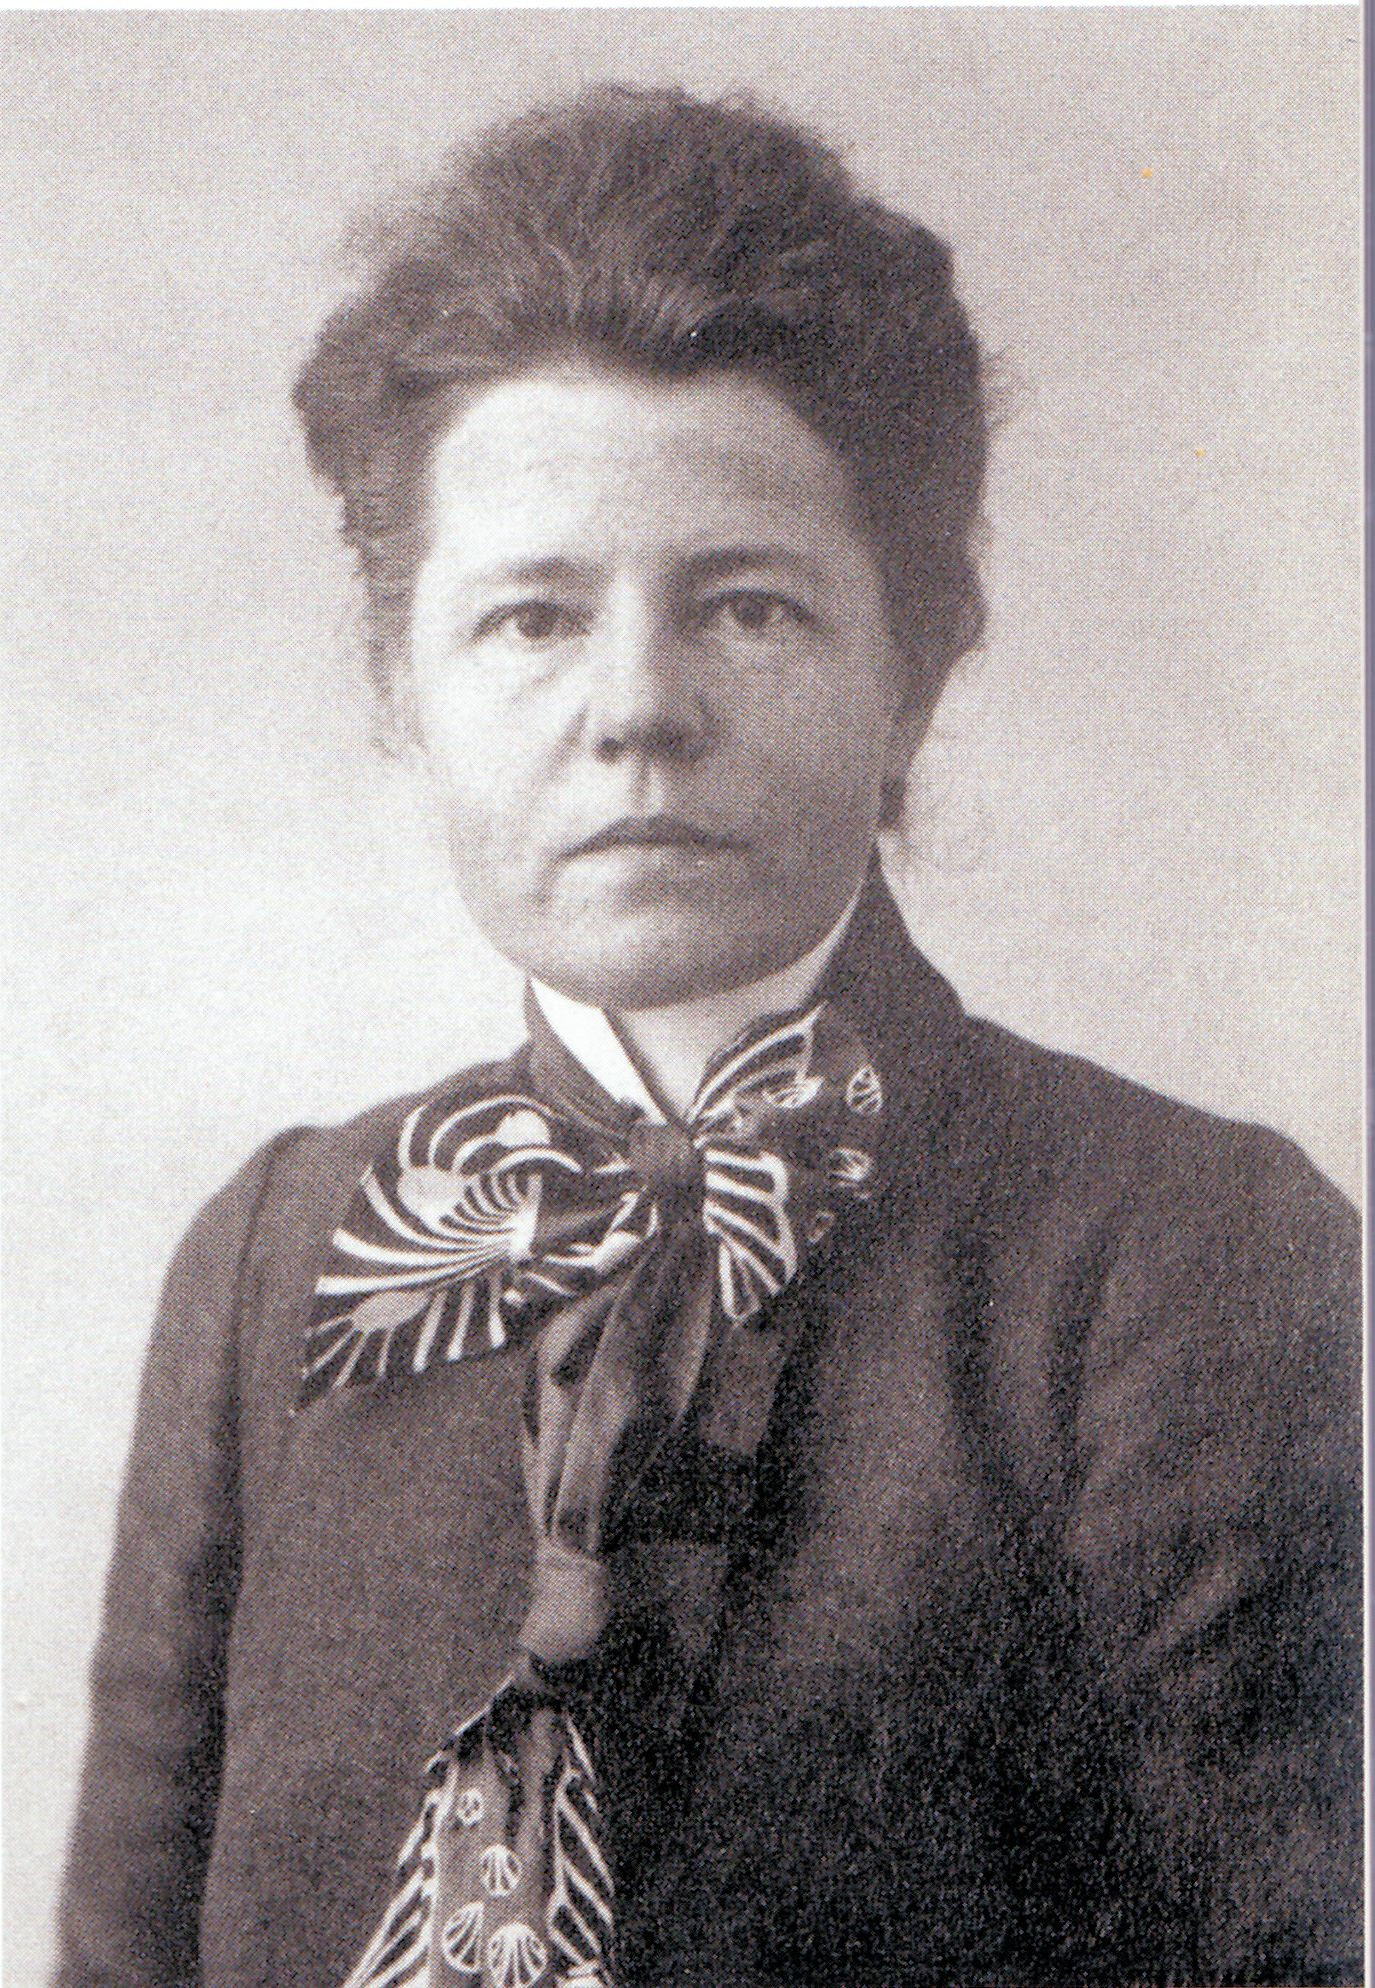 Image of Signe Viola Brander from Wikidata